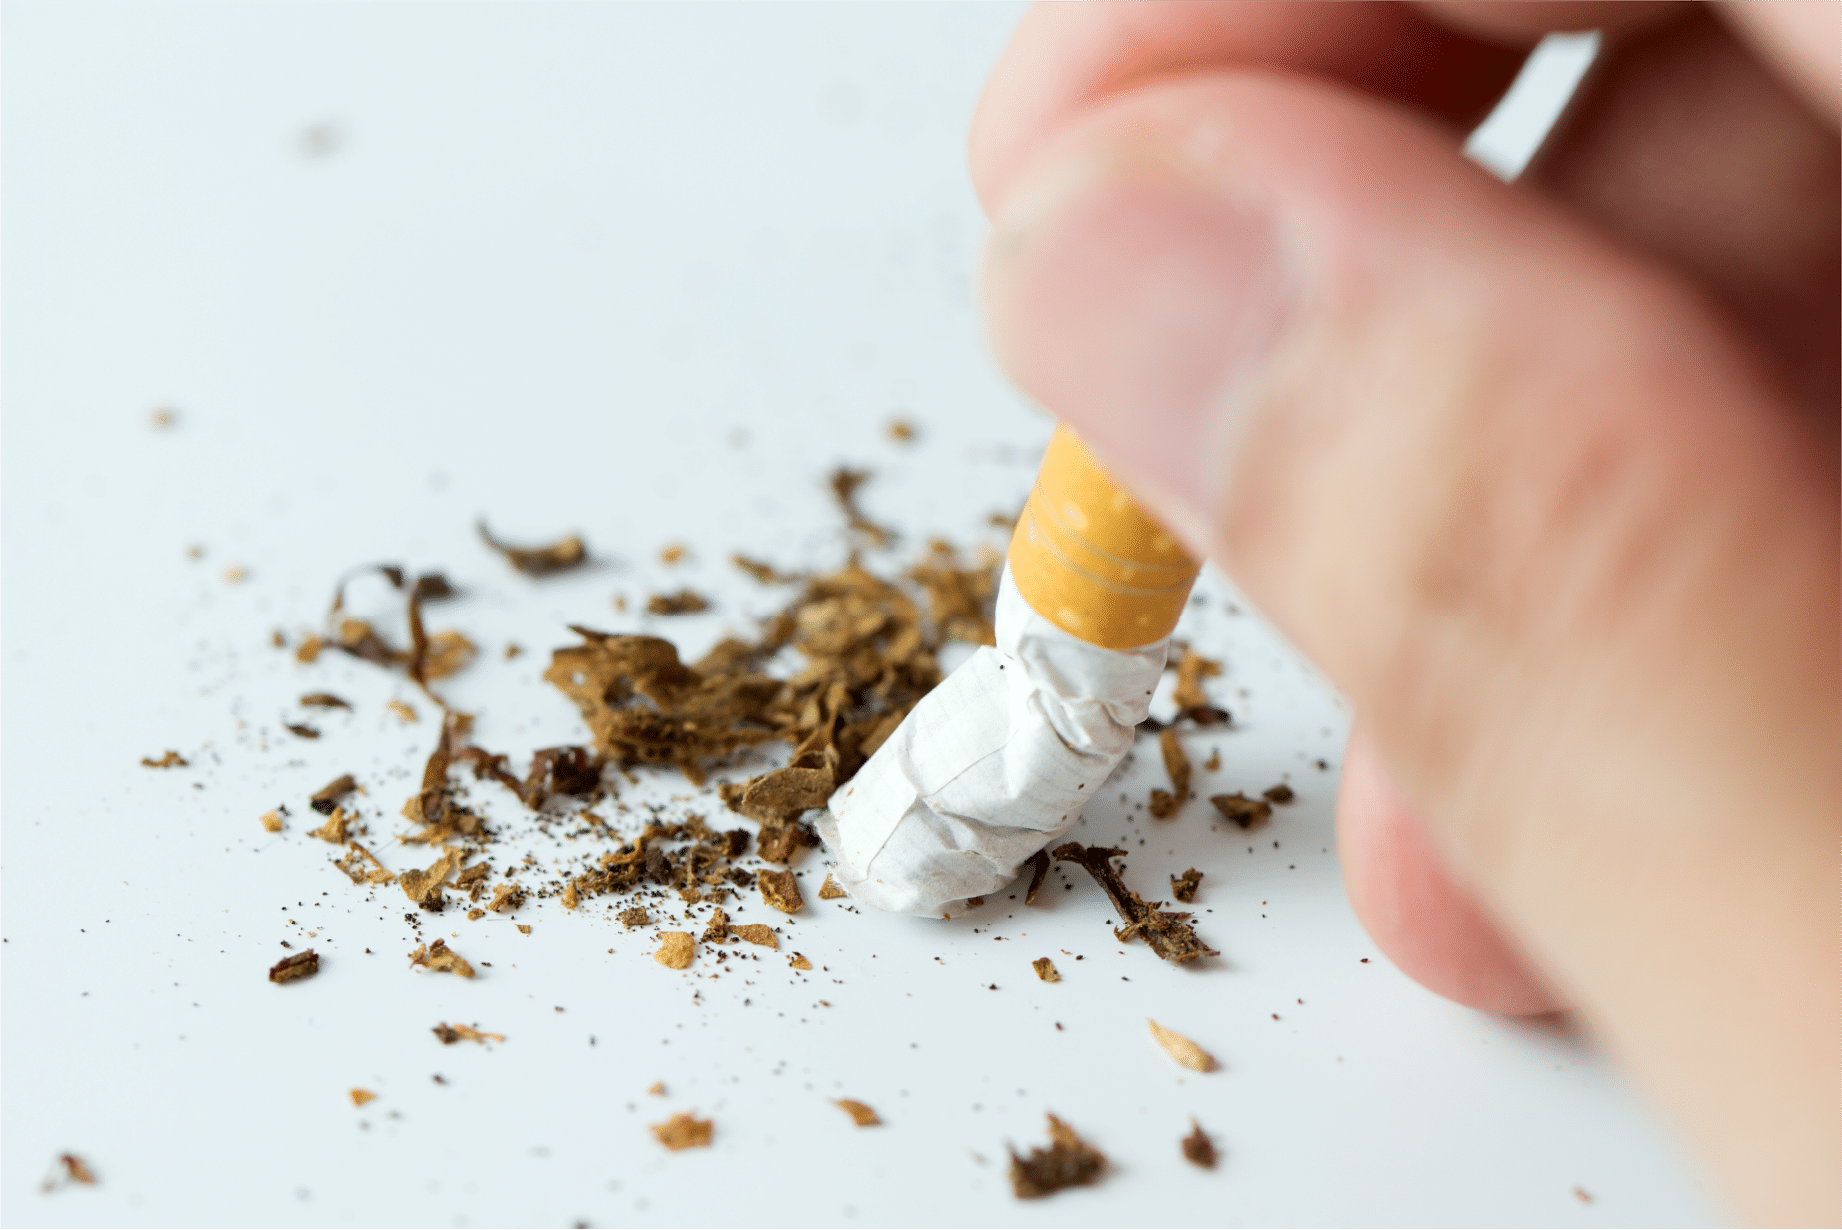 Crushing a cigarette on a white table